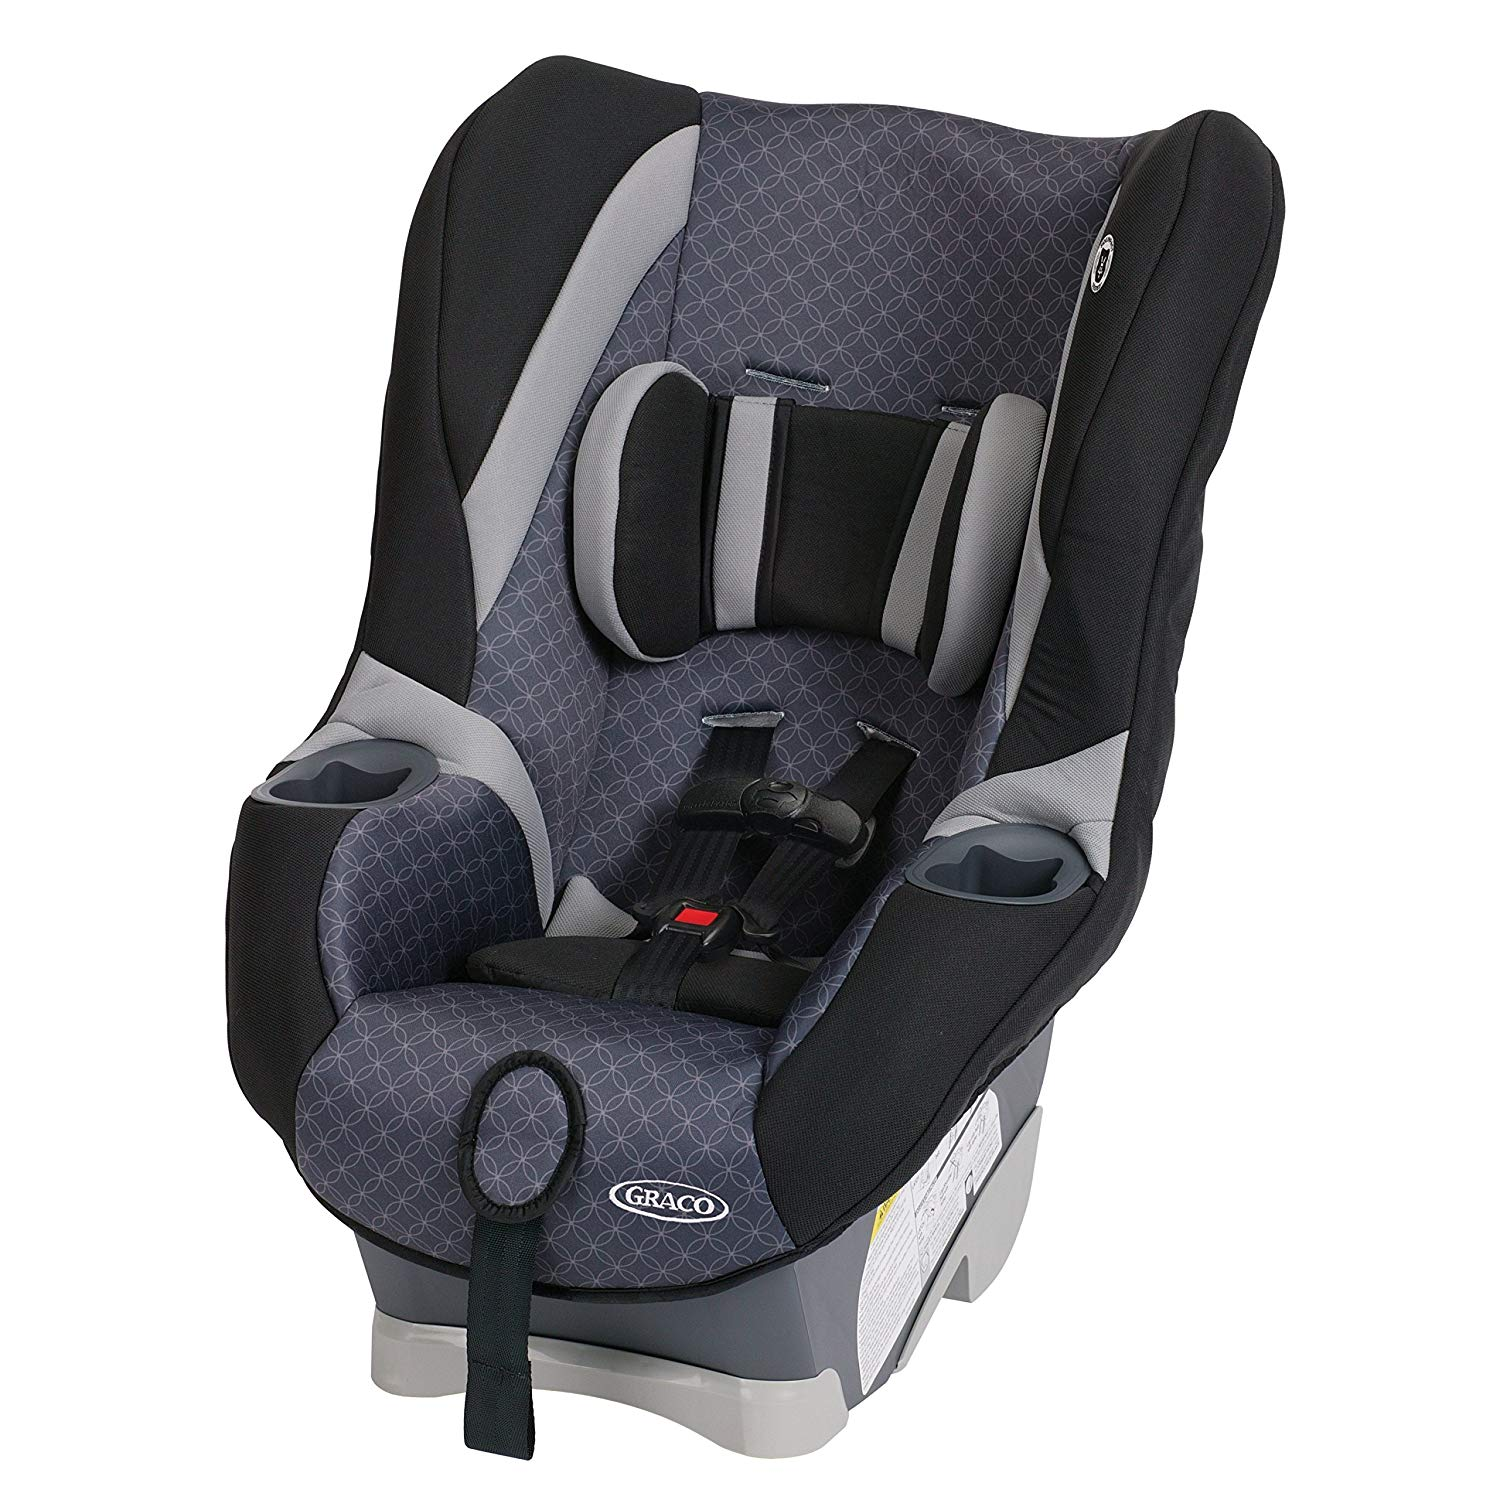 Graco My Ride 65 LX Convertible vehicle Seat